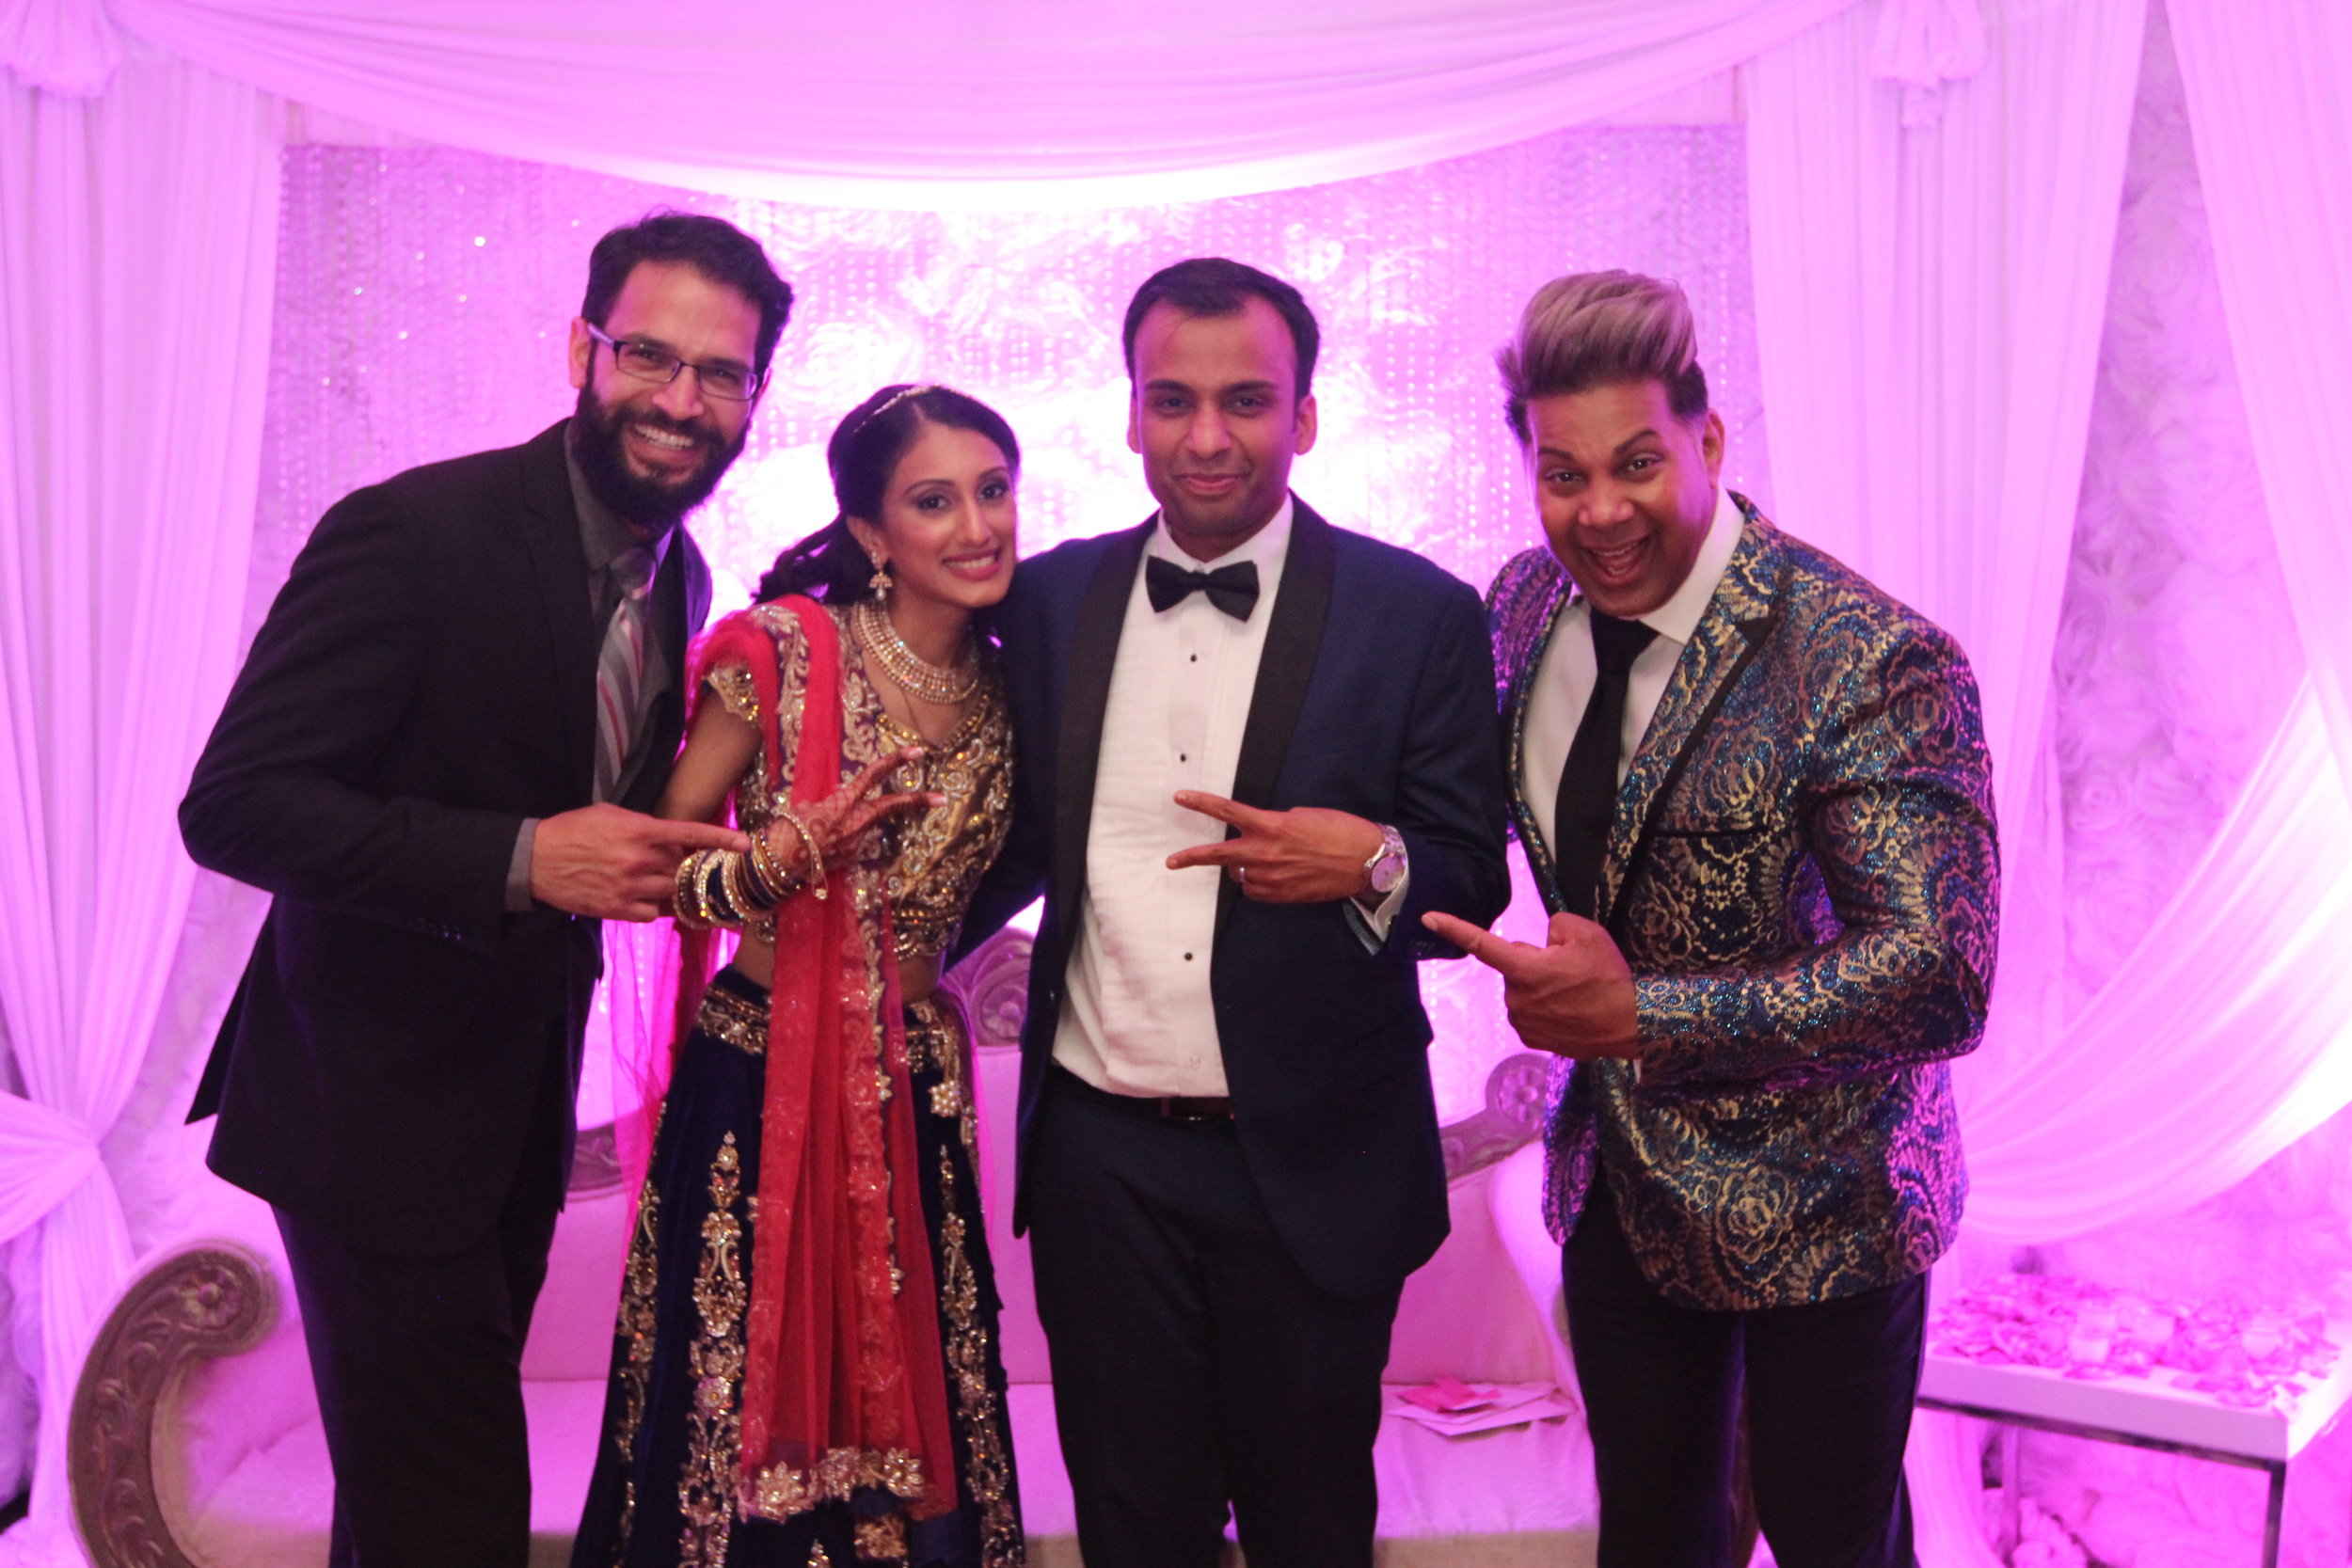 Dj deep and mc chris with the stunning couple at woodbury country club, NY.